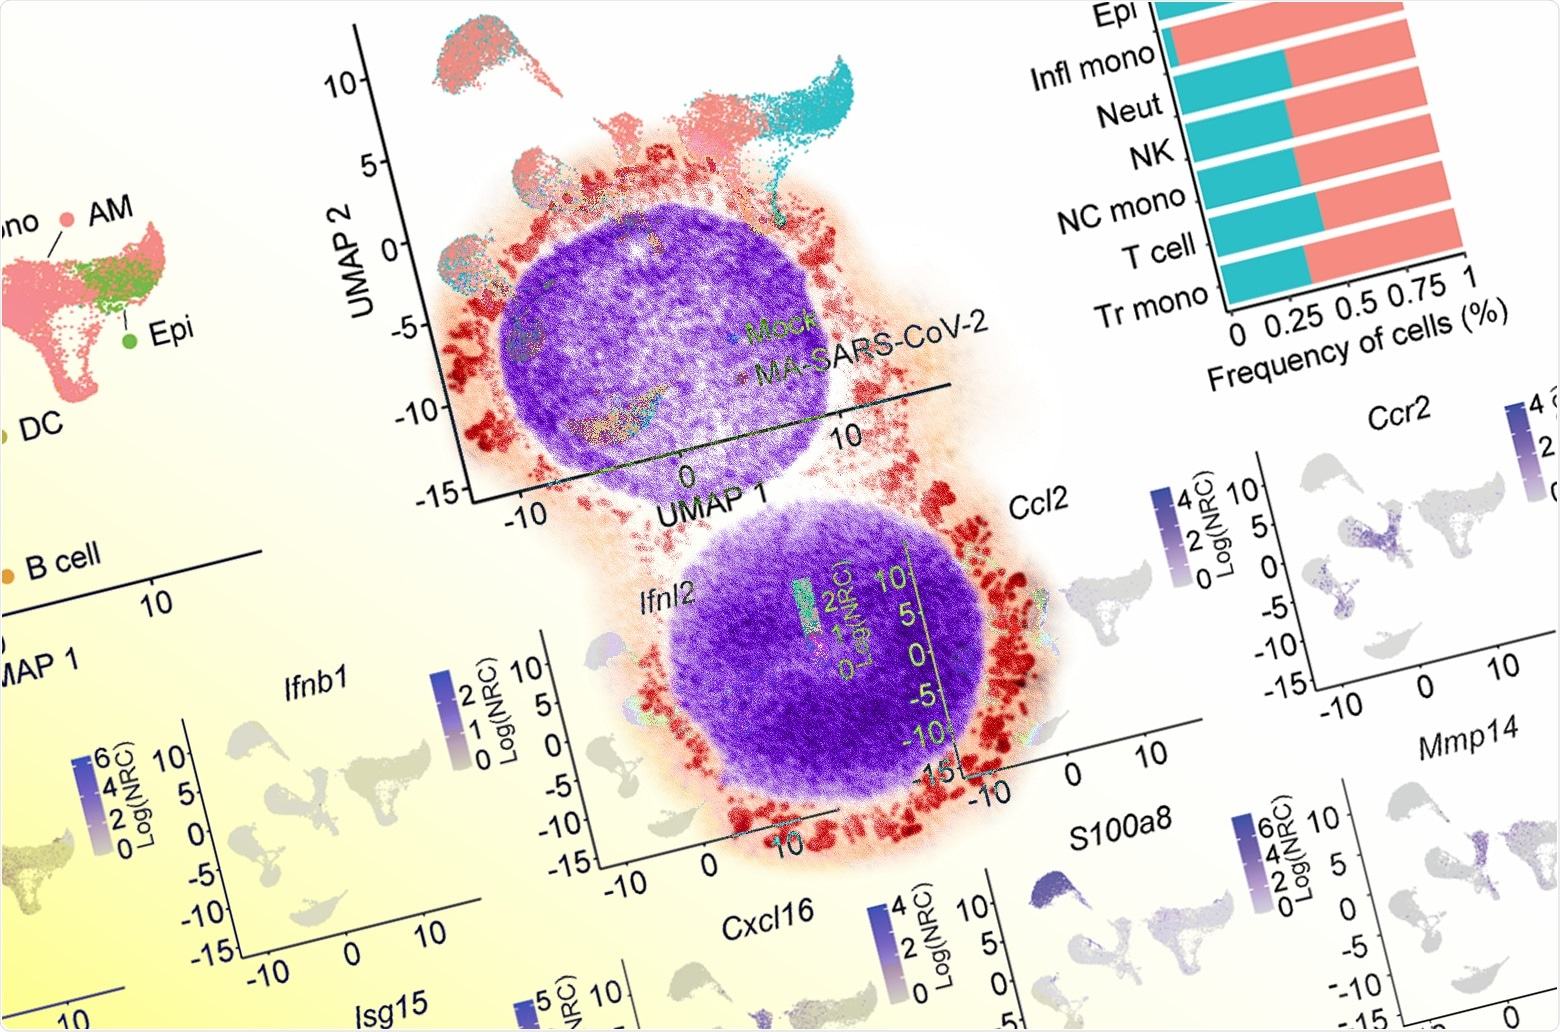 Study: CCR2-dependent monocyte-derived cells restrict SARS-CoV-2 infection